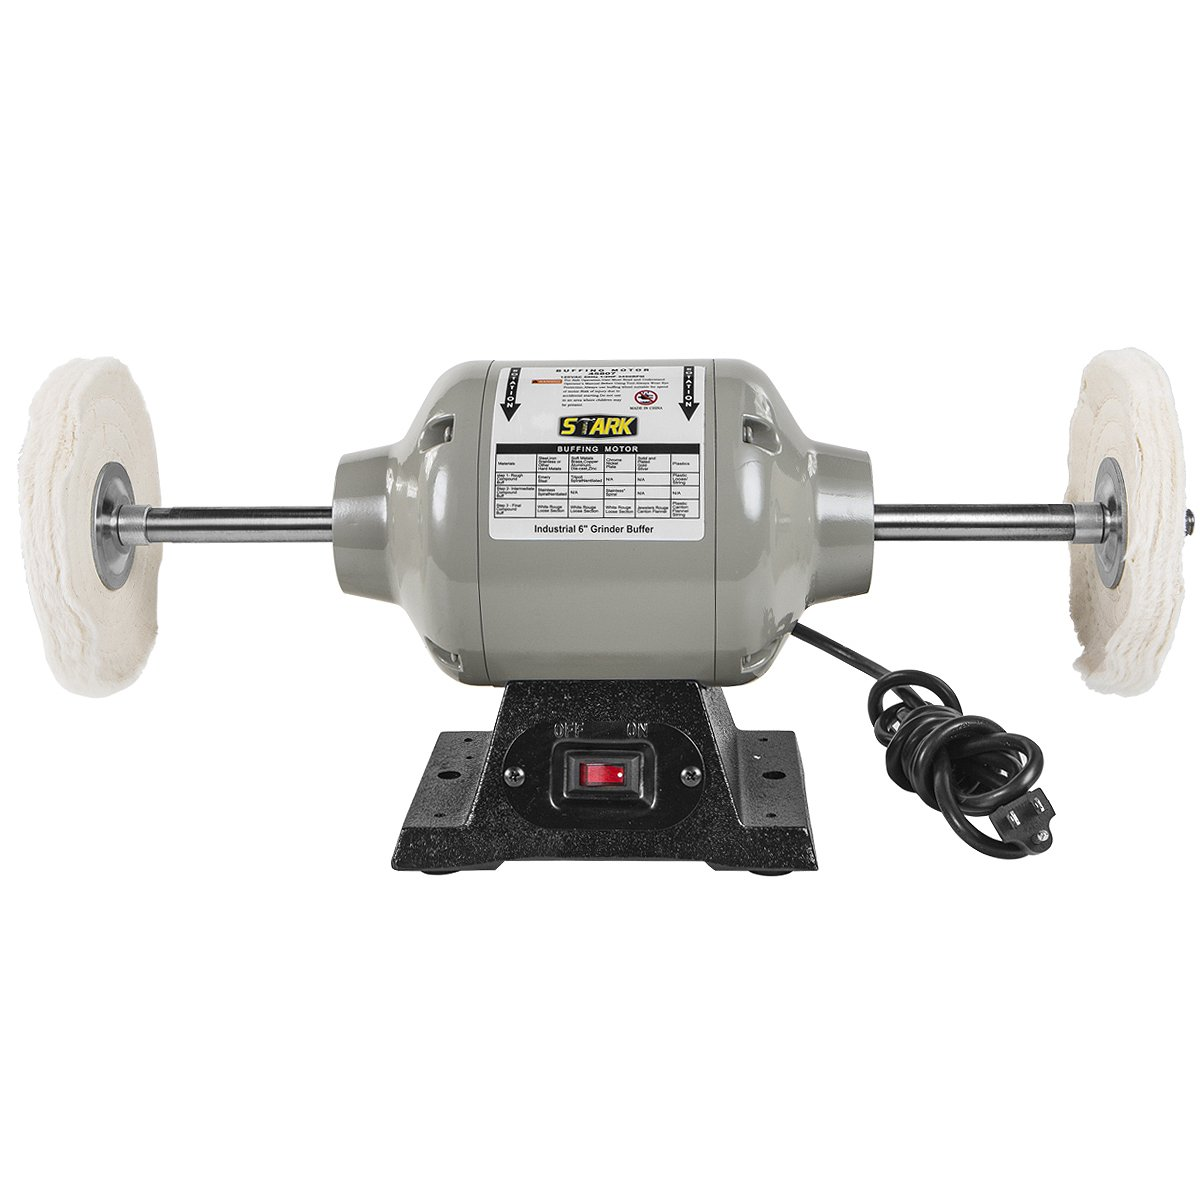 Xtremepowerus 6 Inch Benchtop Buffer Polisher Grinder Heavy Duty 25. Xtremepowerus 6 Inch Benchtop Buffer Polisher Grinder Heavy Duty 25 S 3 450rpm 12 Hp Power Bench Grinders Amazon. Wiring. Br Tool Bench Grinder Wiring Diagram At Scoala.co